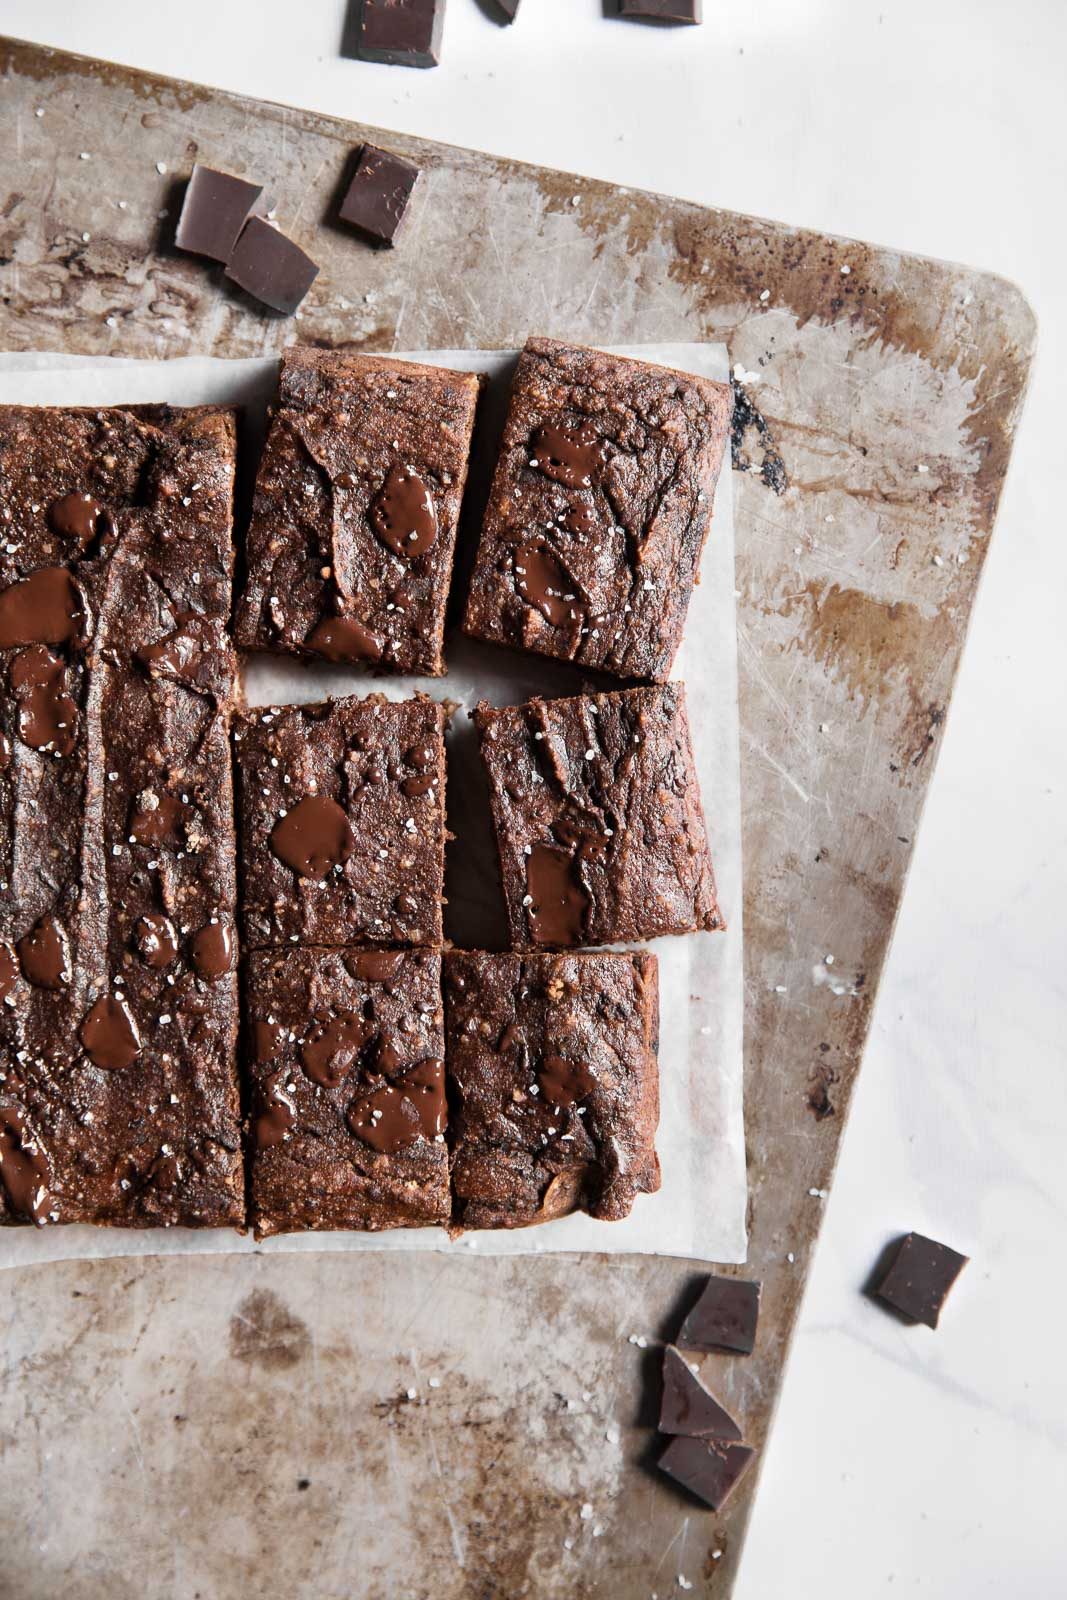 Chocolate banana bread bars on a baking sheet